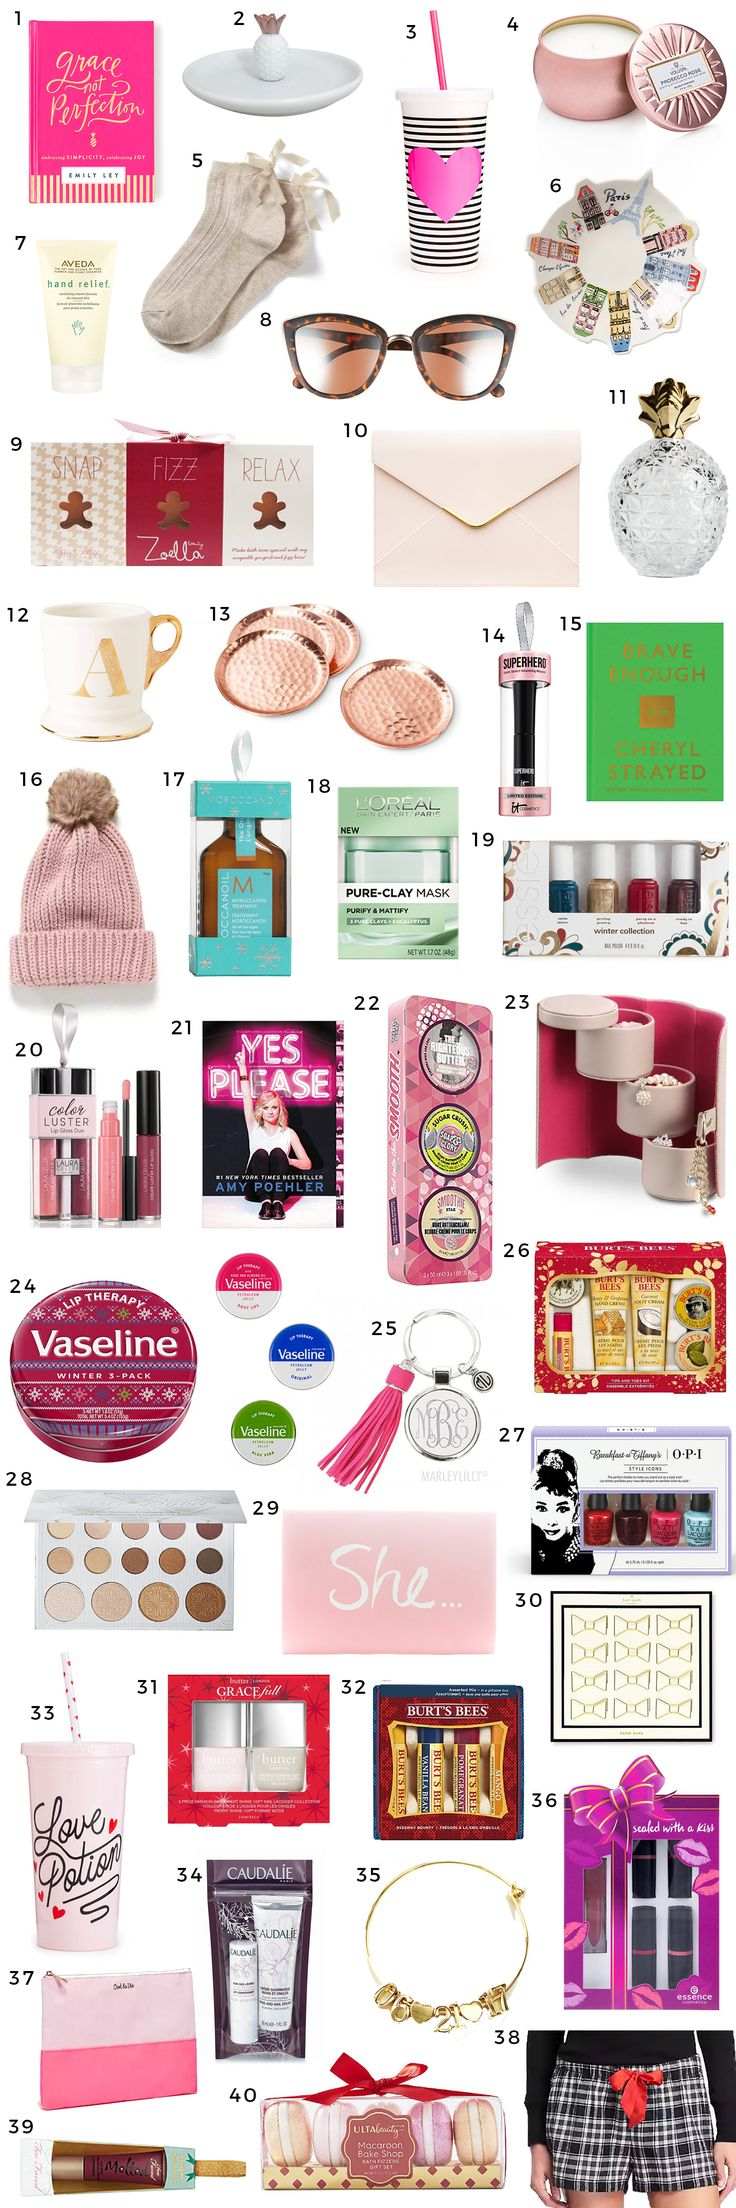 The Best Christmas Gift Ideas for Women under $15 | Shop the ultimate Christmas gift guide for women with Florida beauty and fashion blogger Ashley Brooke Nicholas' top 40 gift ideas under $15!